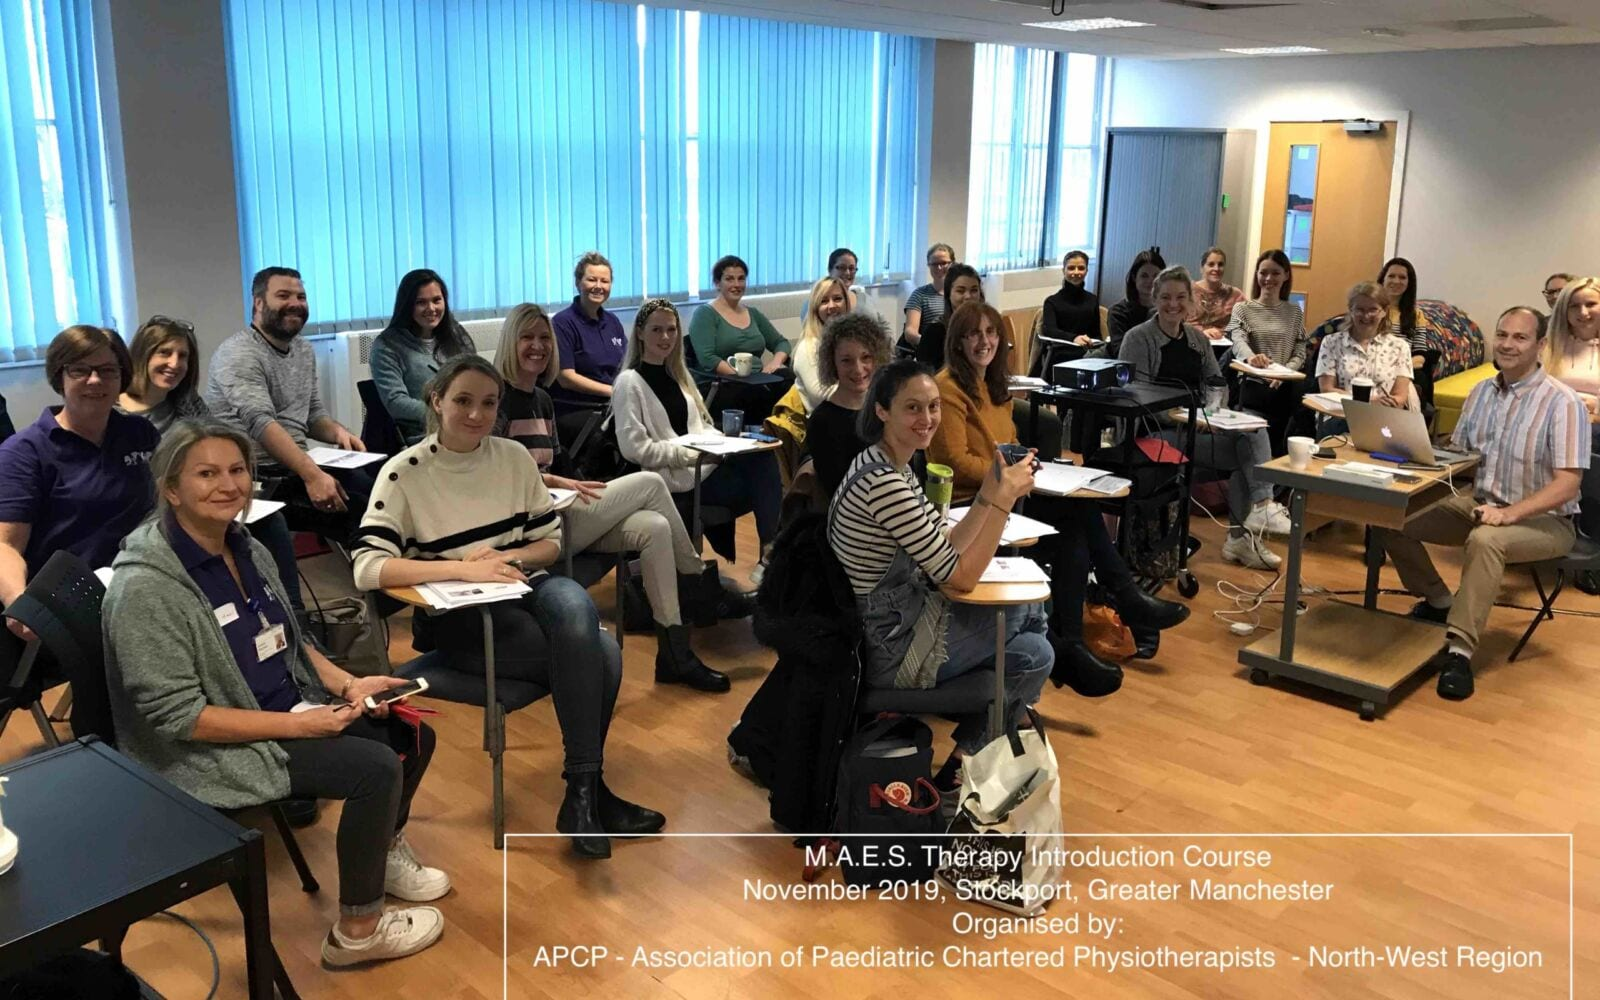 APCP NW - MAES Introduction Course Nov.2019 for paediatric Therapists treating CP